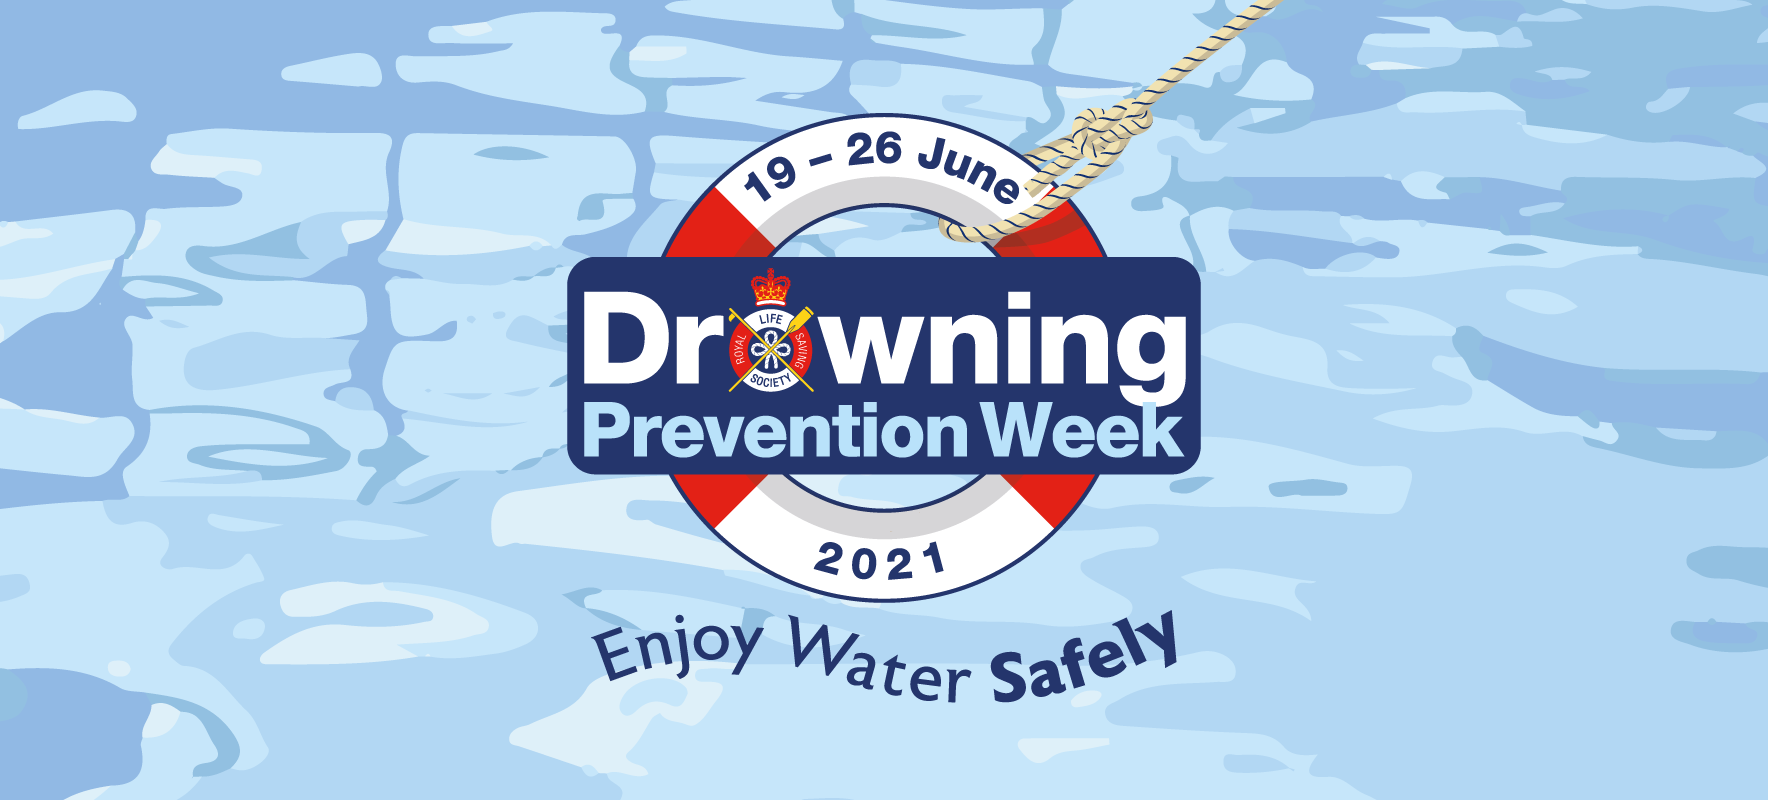 Drowning Prevention Week 19 - 26 June 2021